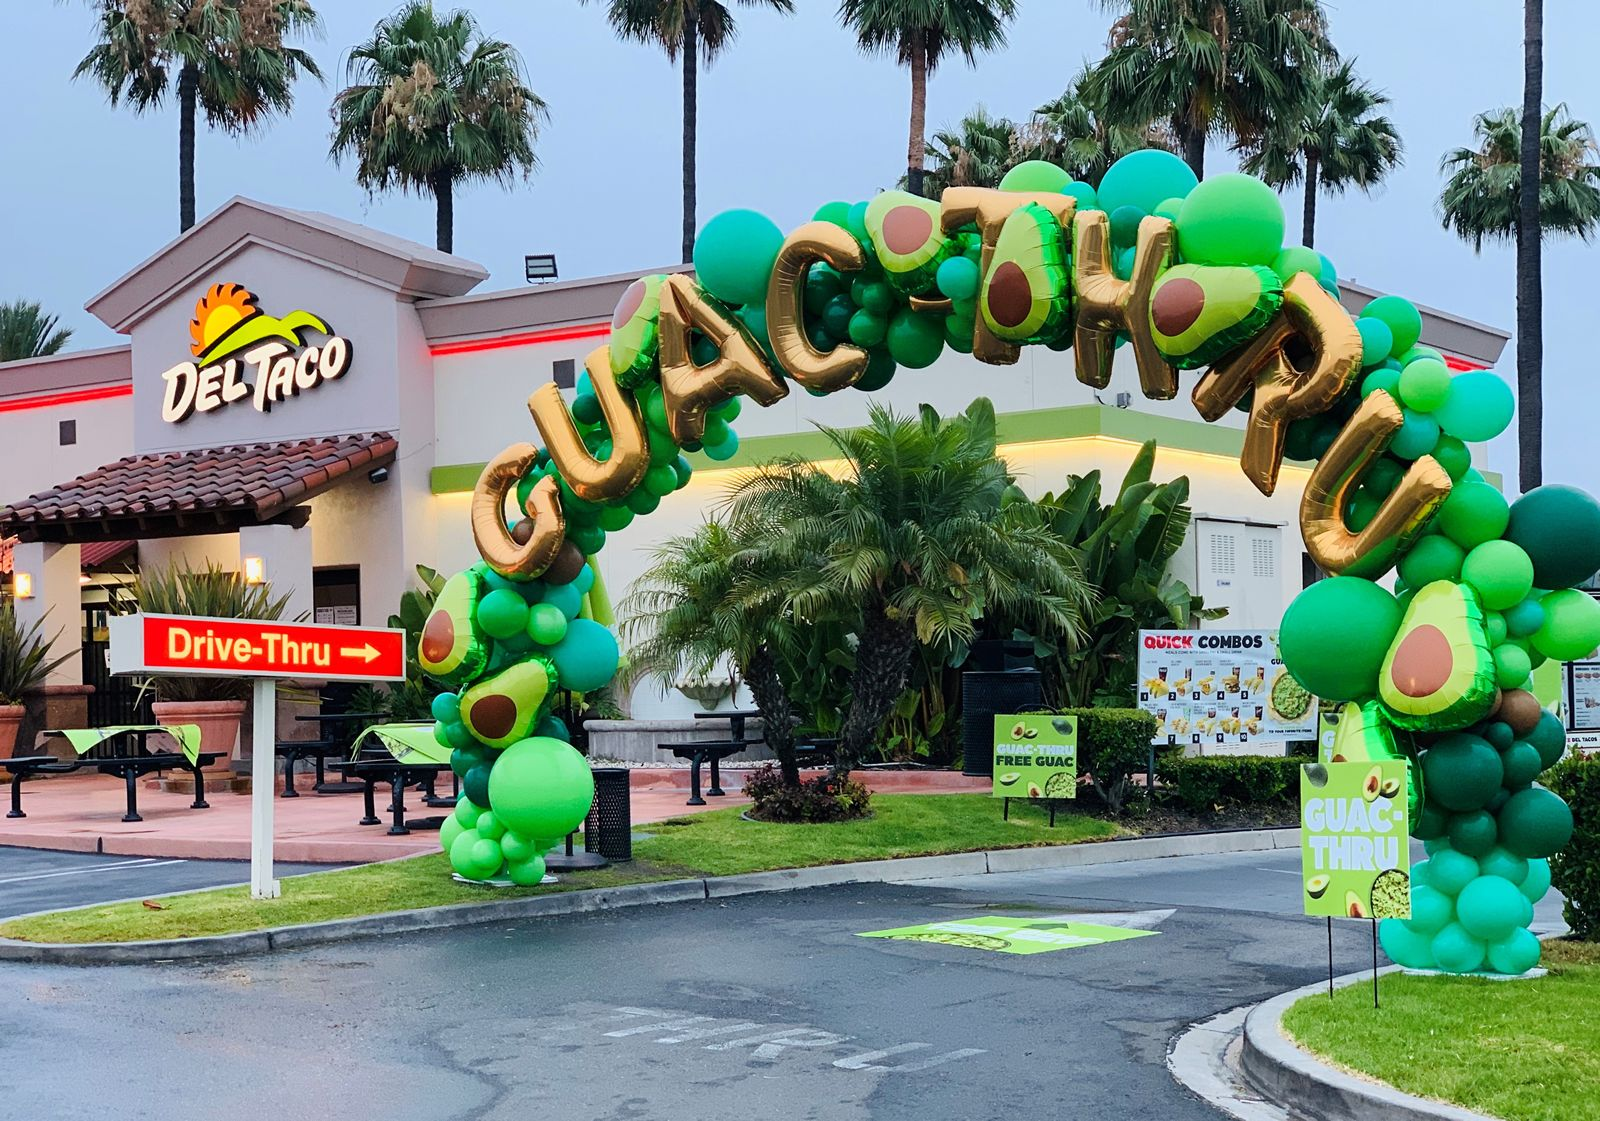 """Del Taco Launches """"Guac-Thrus"""" for National Drive-Thru Day With Free Fresh Guacamole for Everyone & on Almost Anything"""